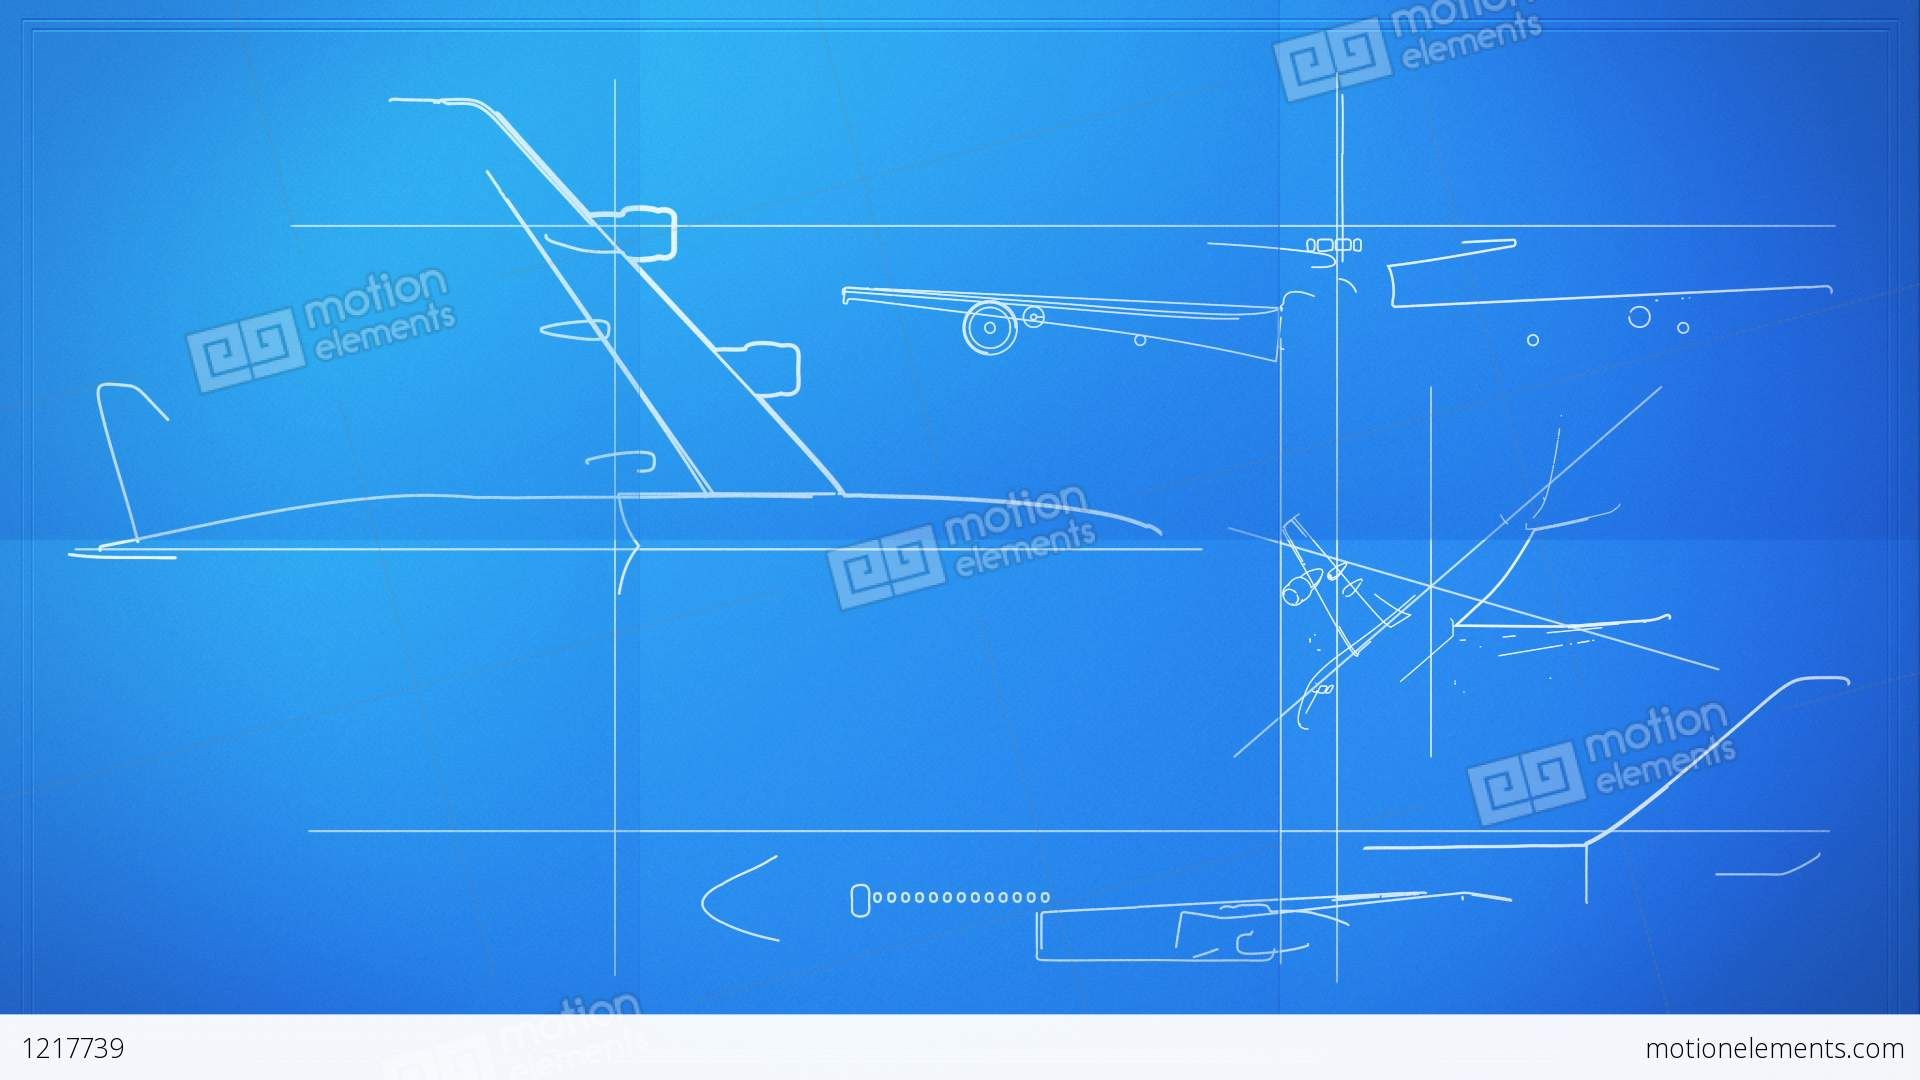 Pics For gt; Aerospace Engineering Blueprint